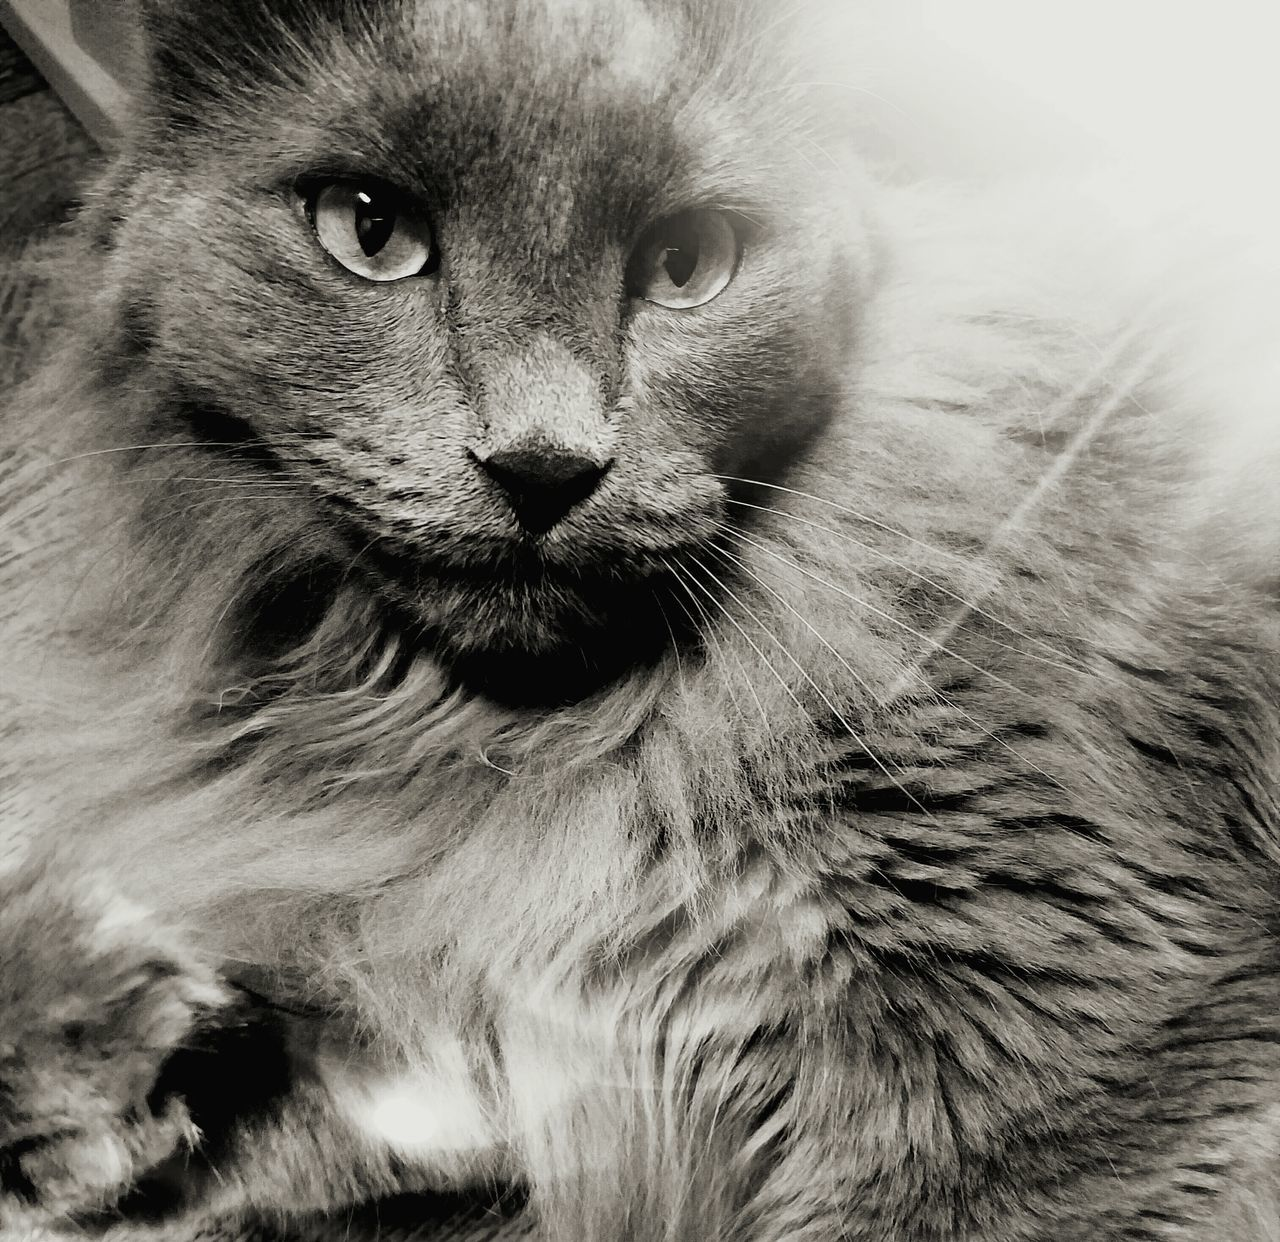 Furry Love Cats Black And White The Song Of Light Fine Art Photography MUR B&W Monocrome Photography